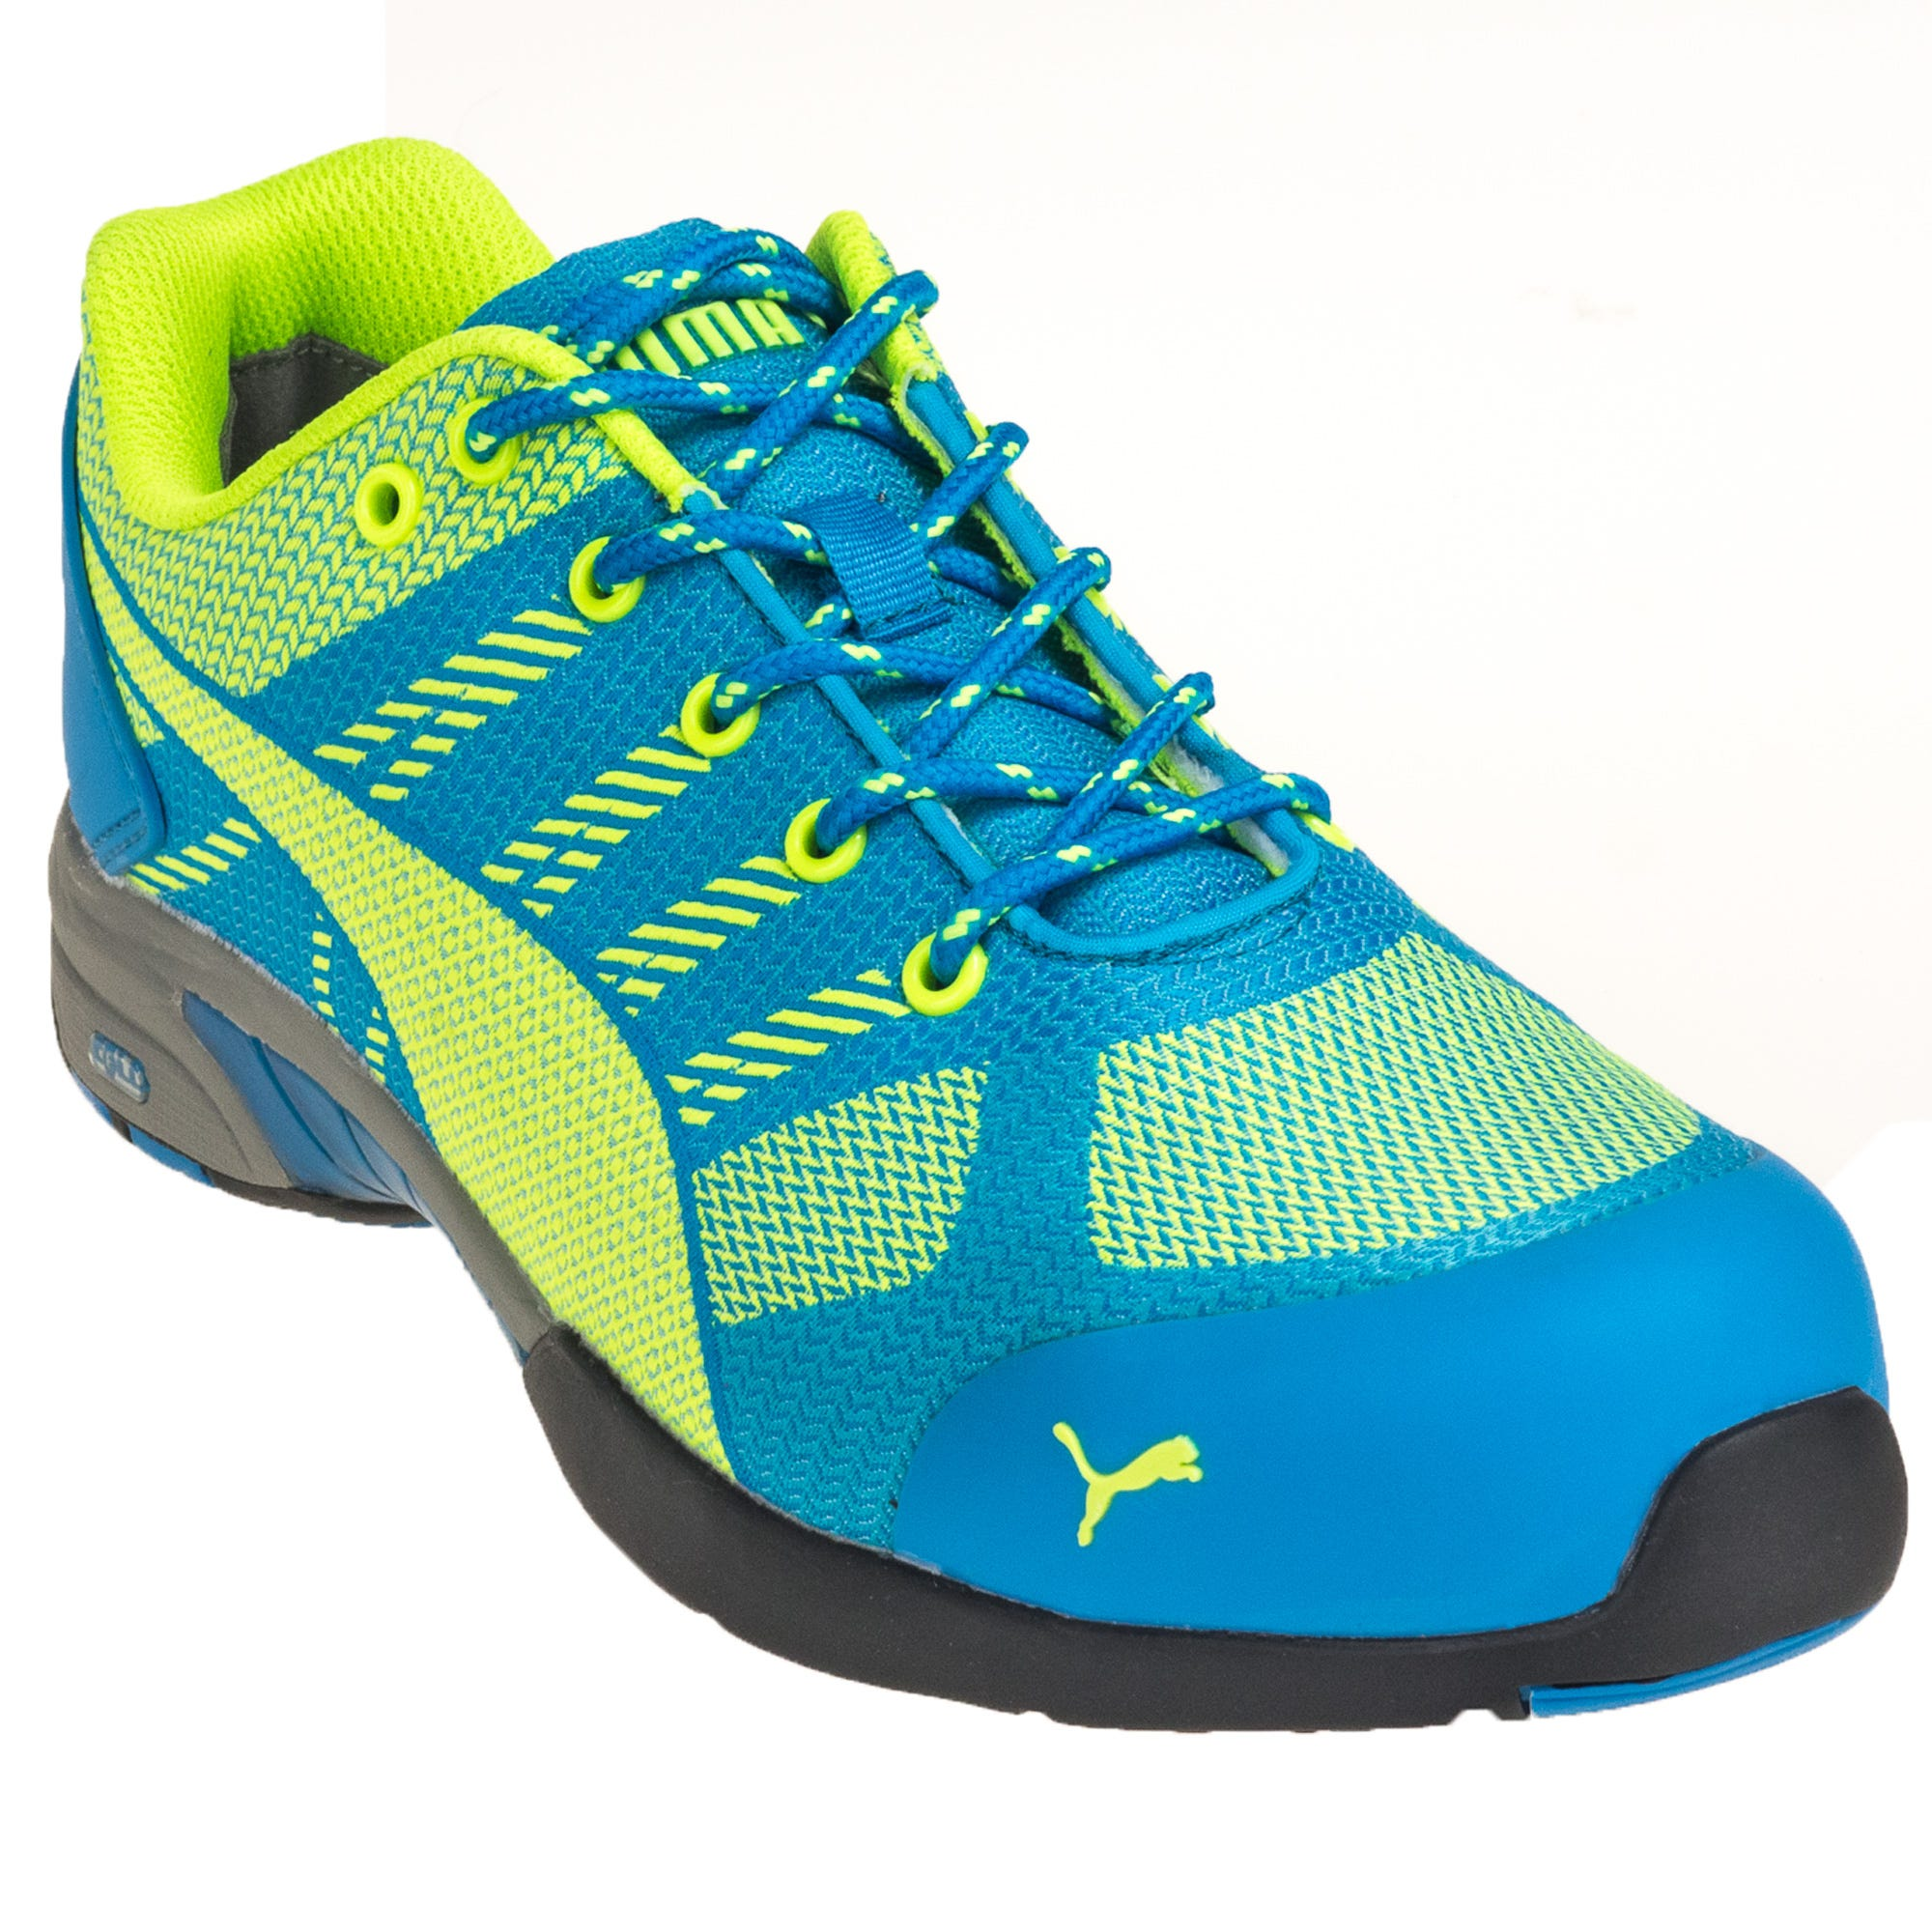 Puma Safety 642905 Women's ESD Steel Toe Tennis Shoes